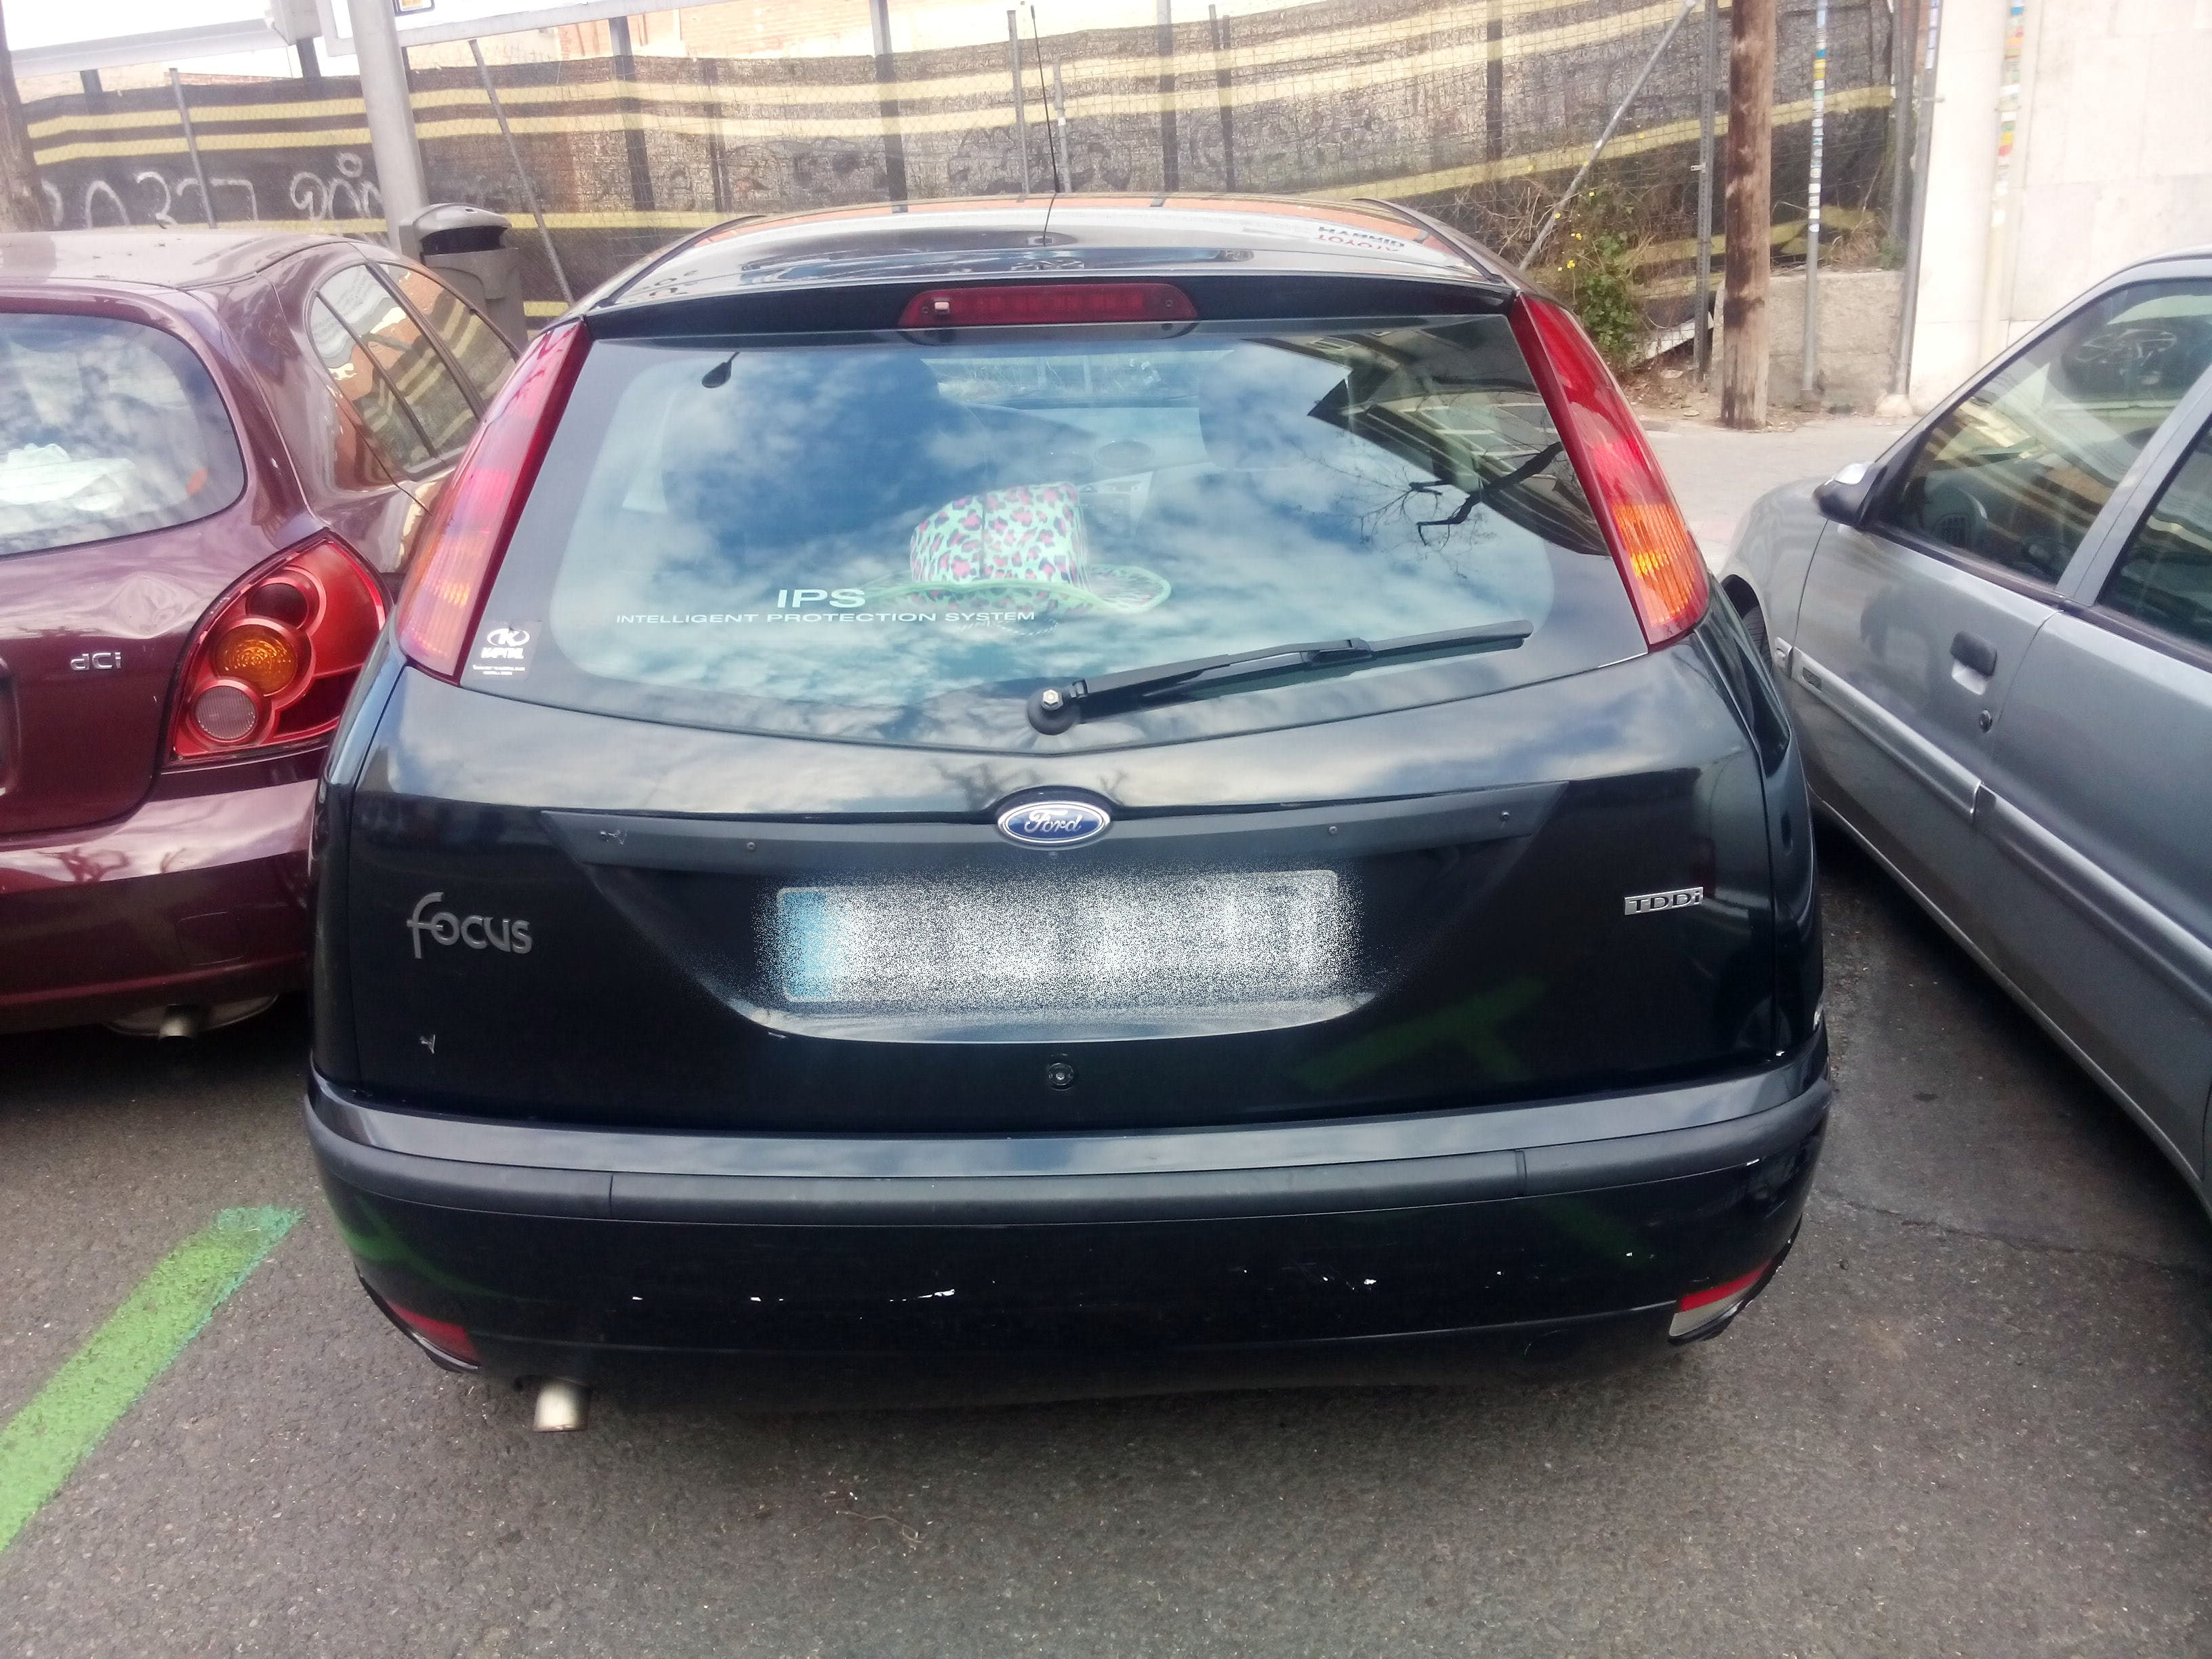 Ford Focus TDDI 1800 90CV con Reproductor de CD